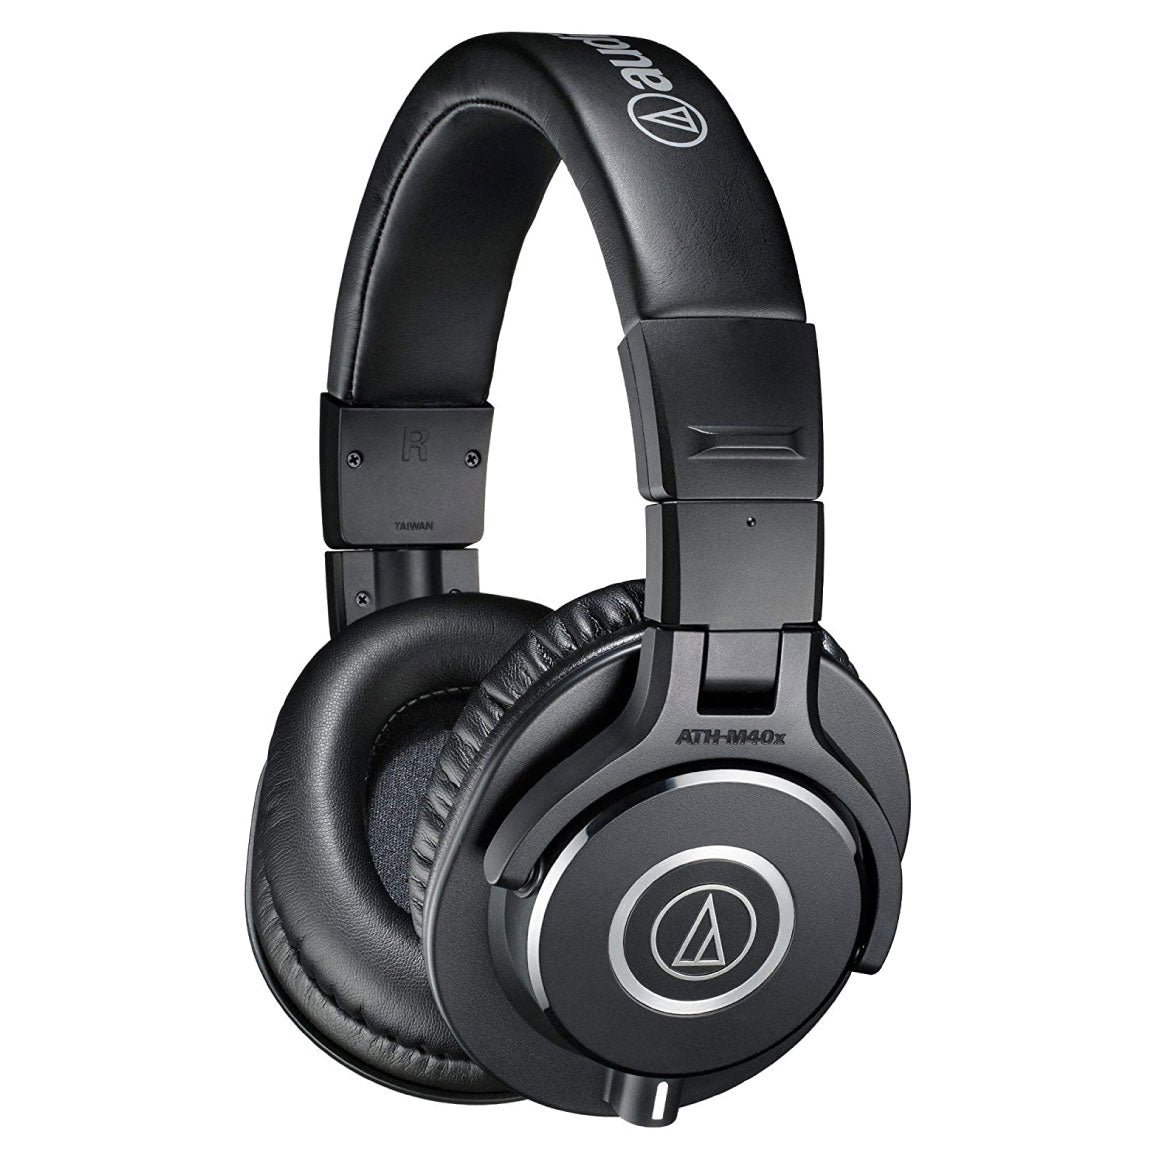 Audio-Technica - ATH-M40xvs competitors